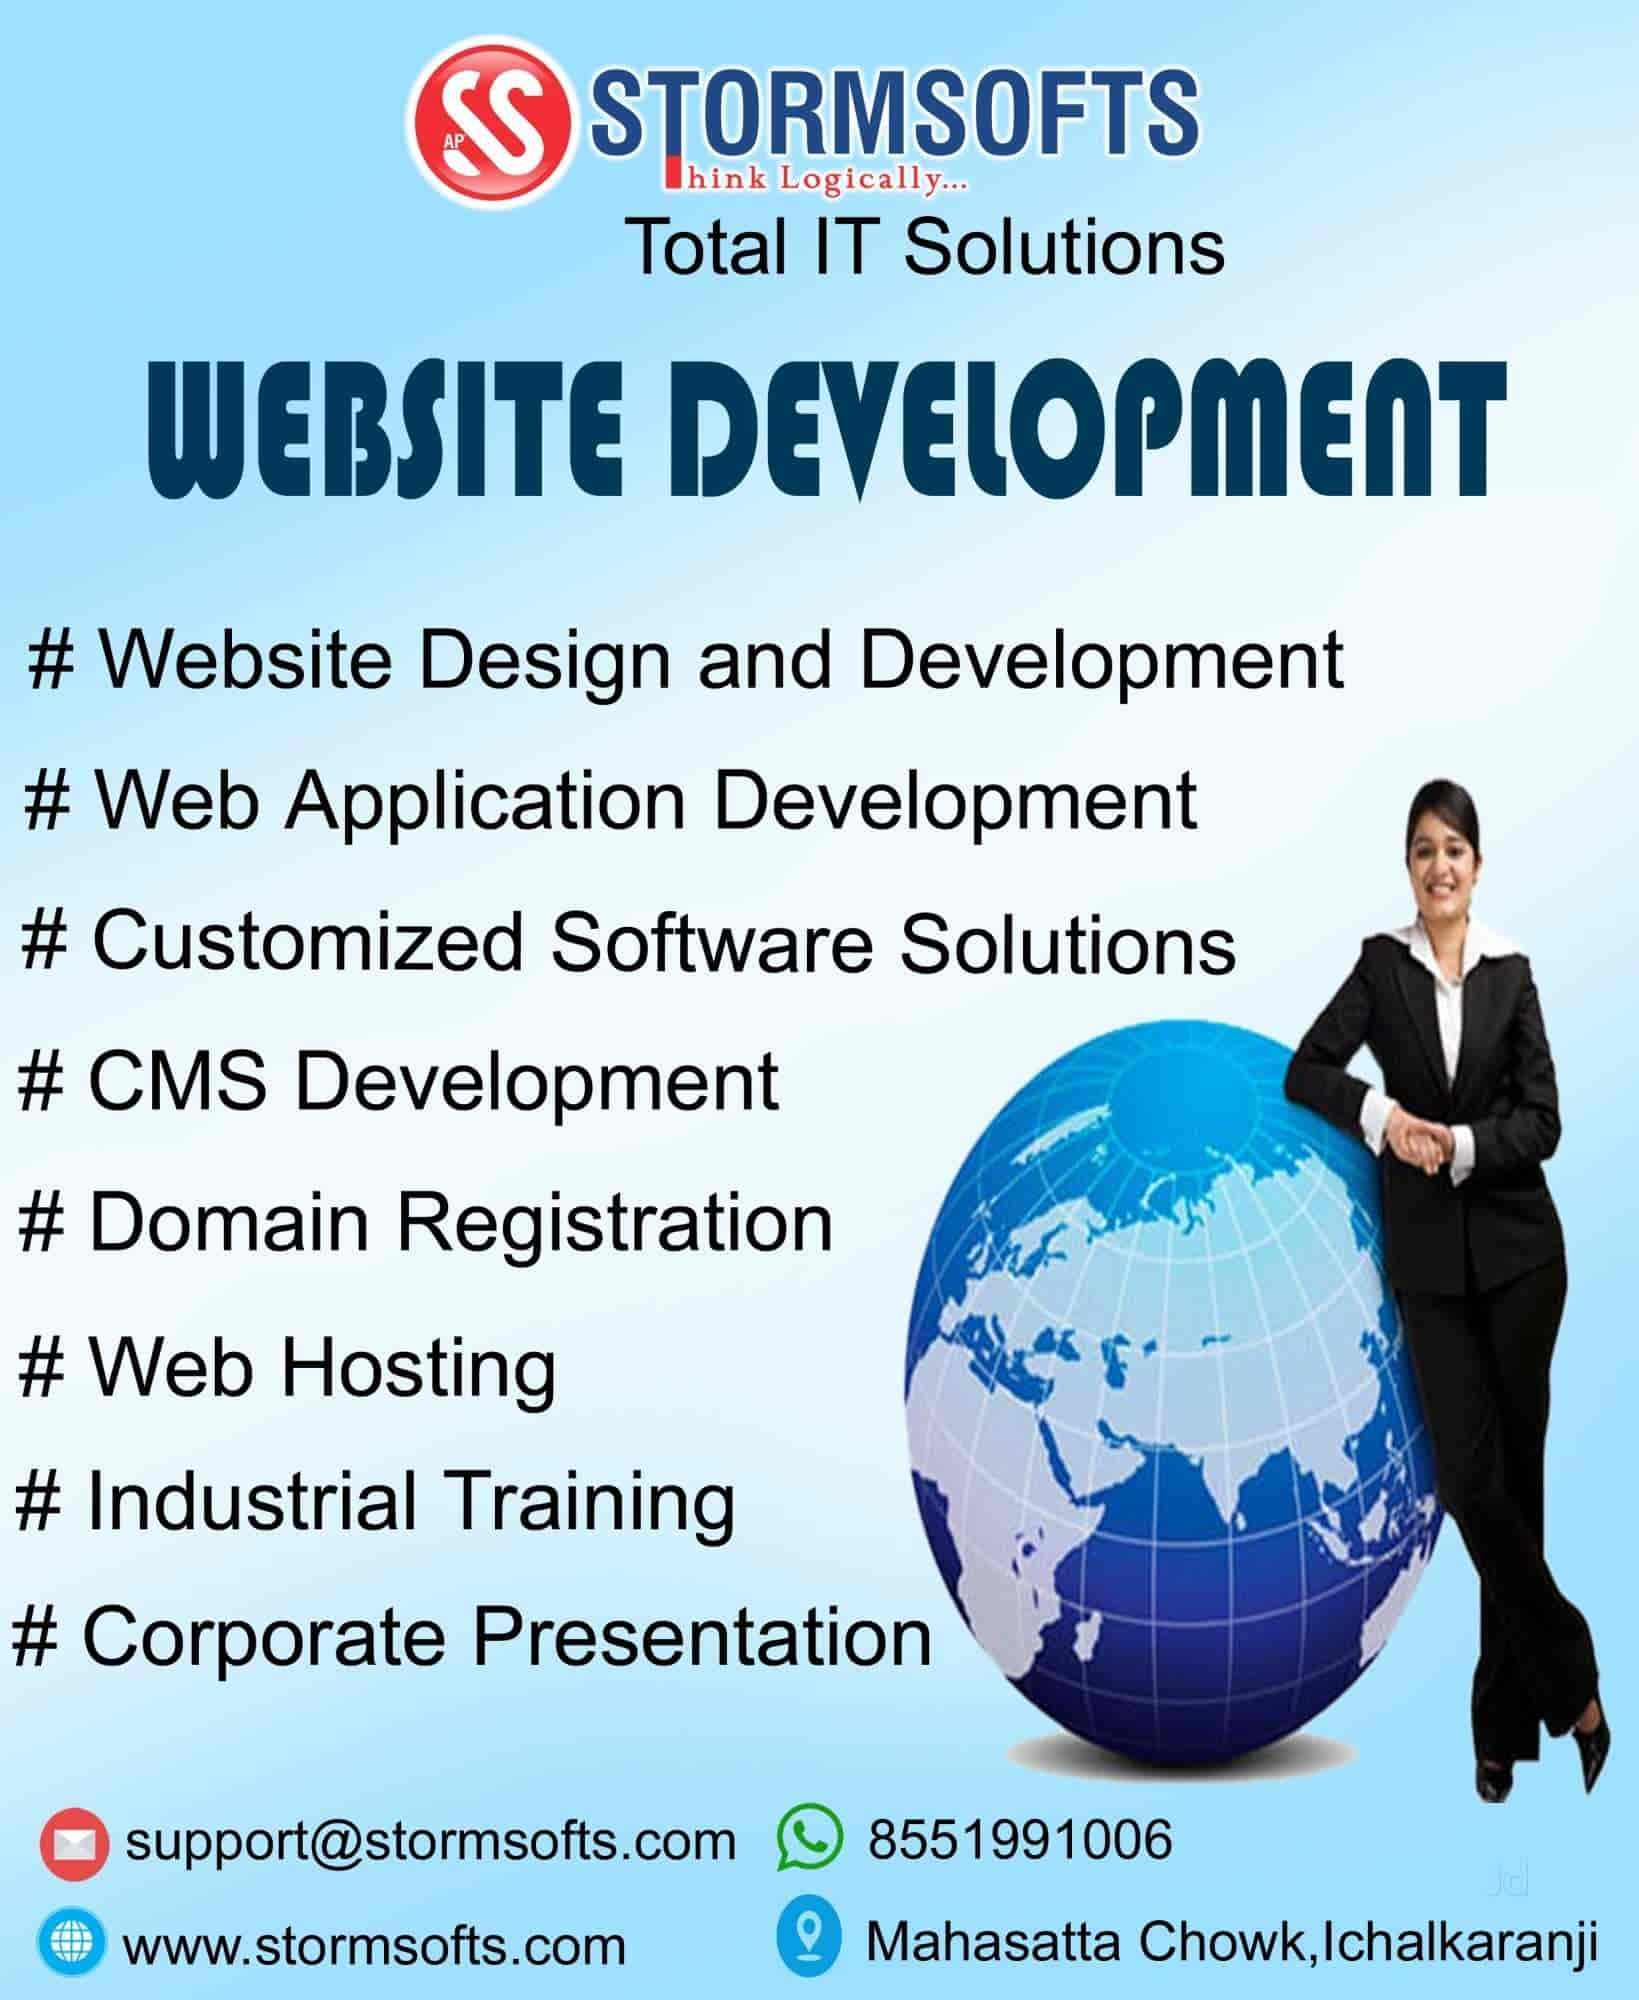 Software Developer Companies In Stormsofts Software Development Company Photos Asara Nagar